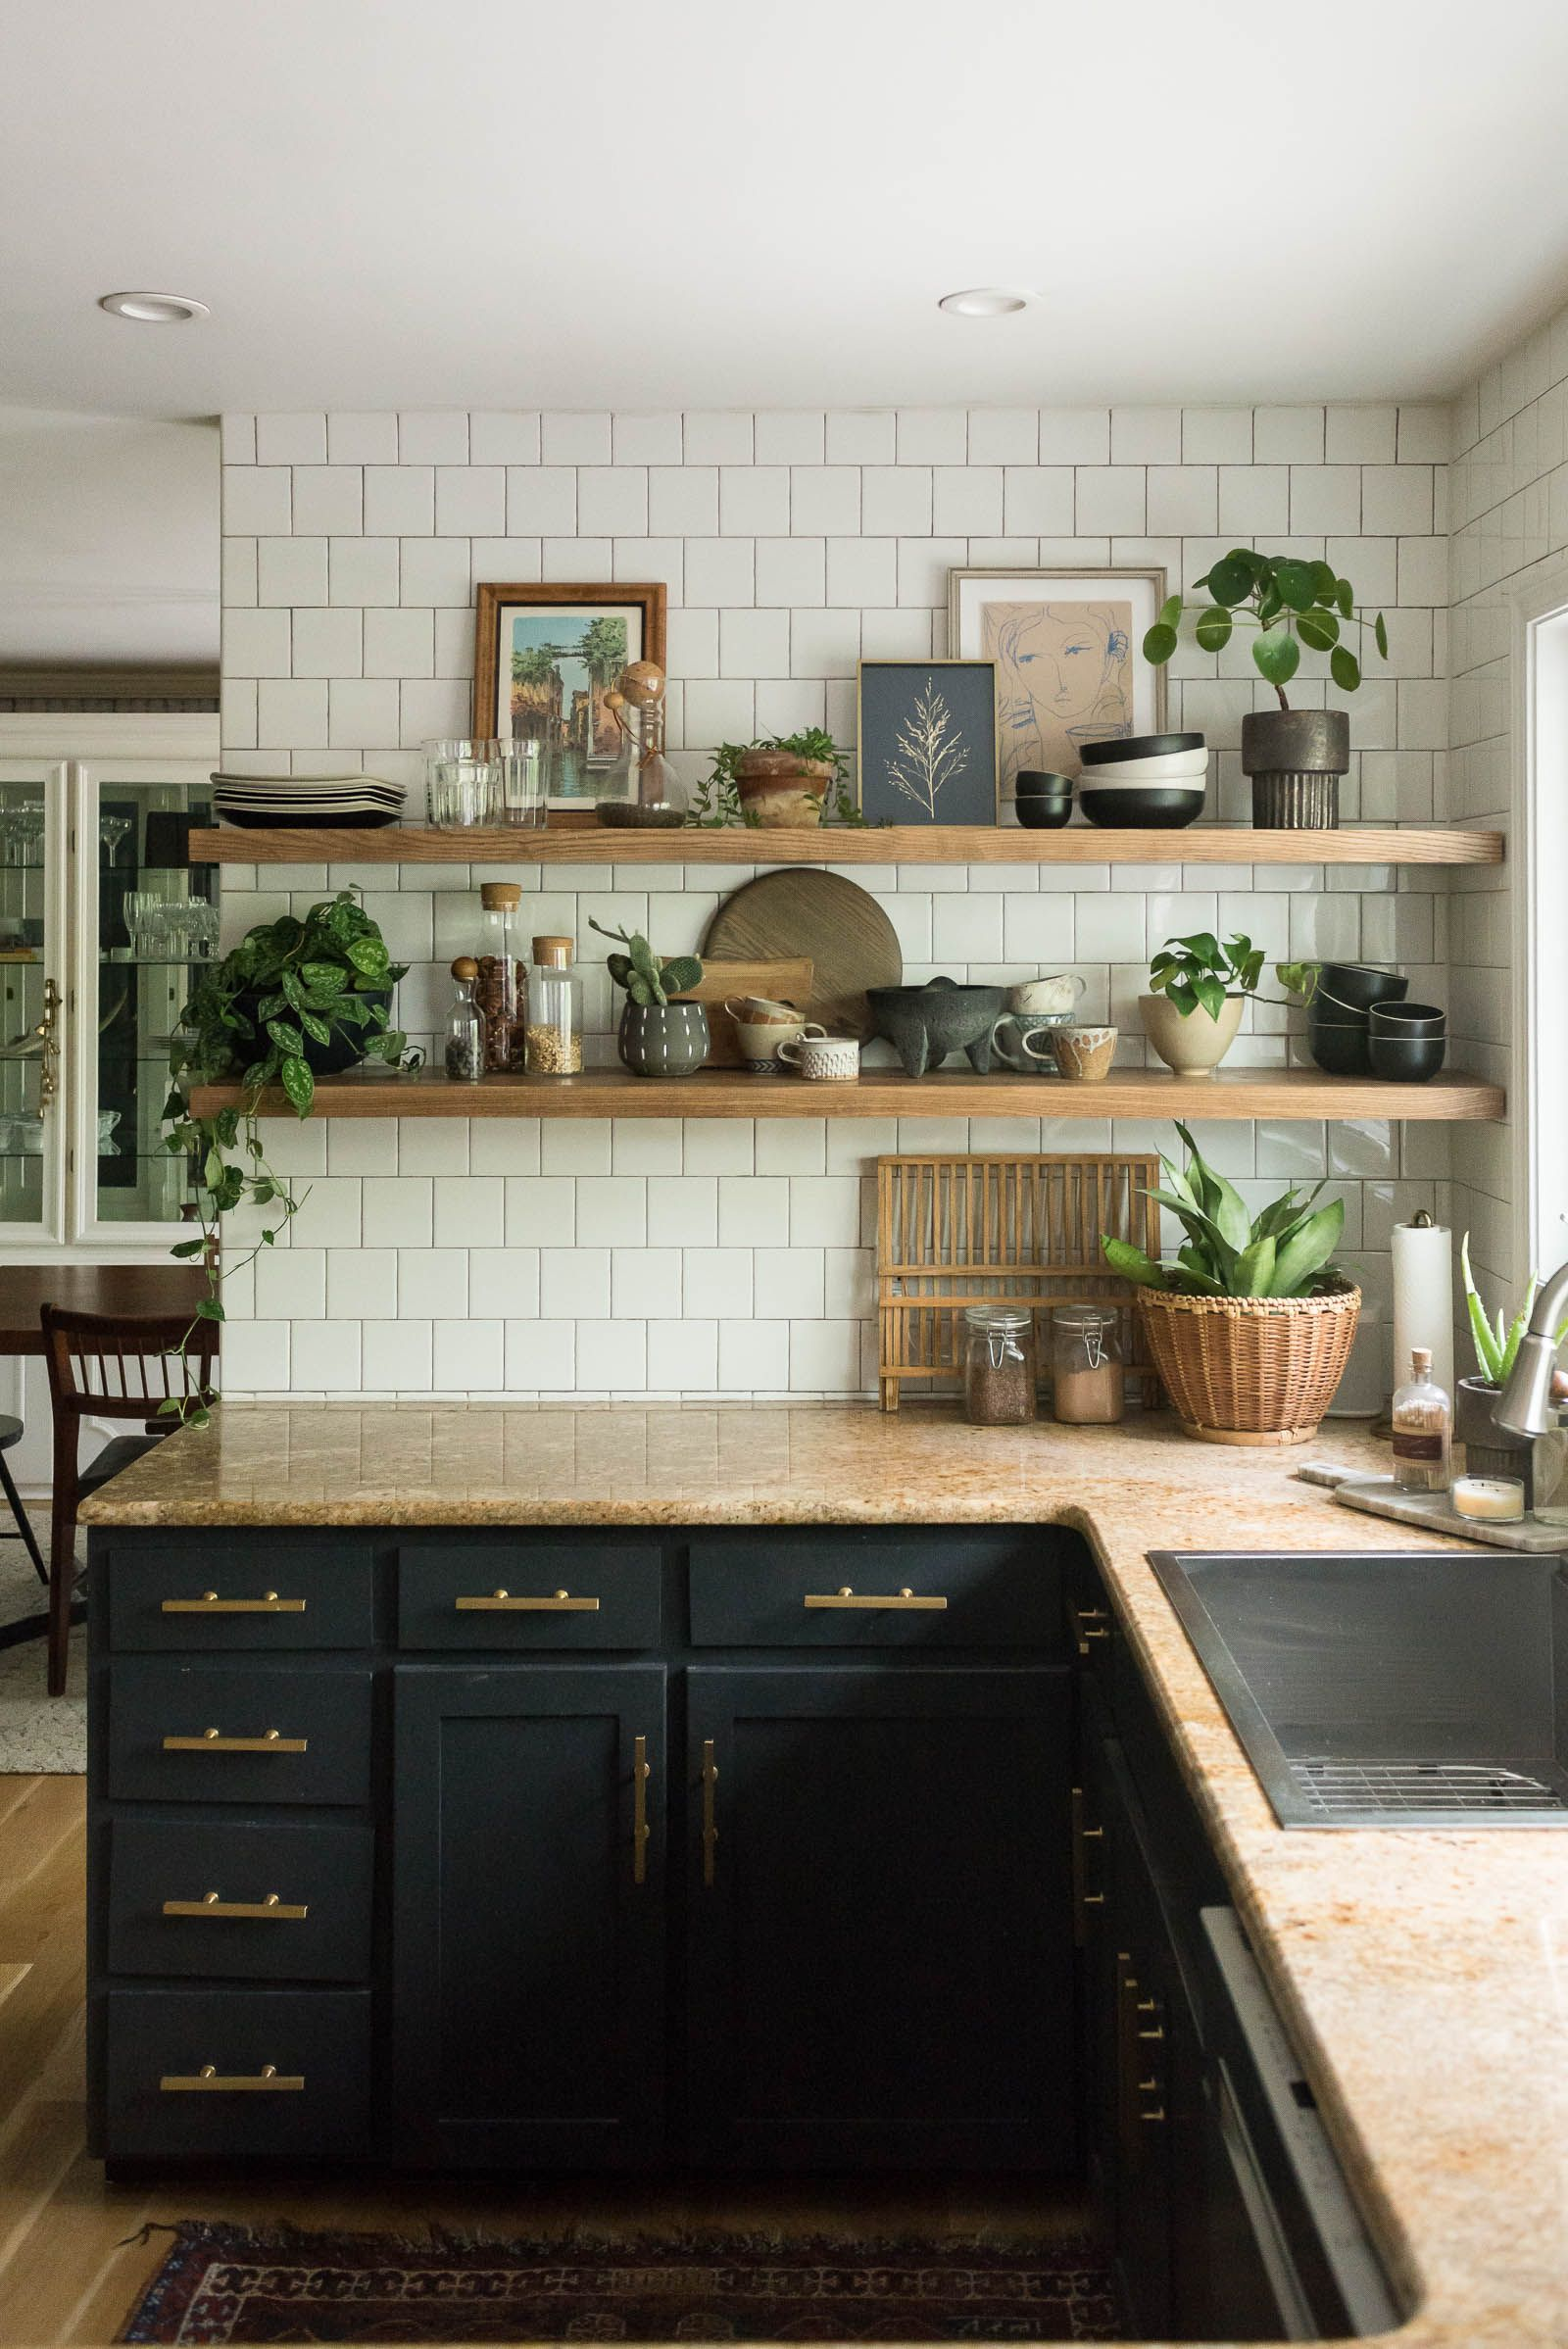 How I Cut Corners with the Kitchen Shelving